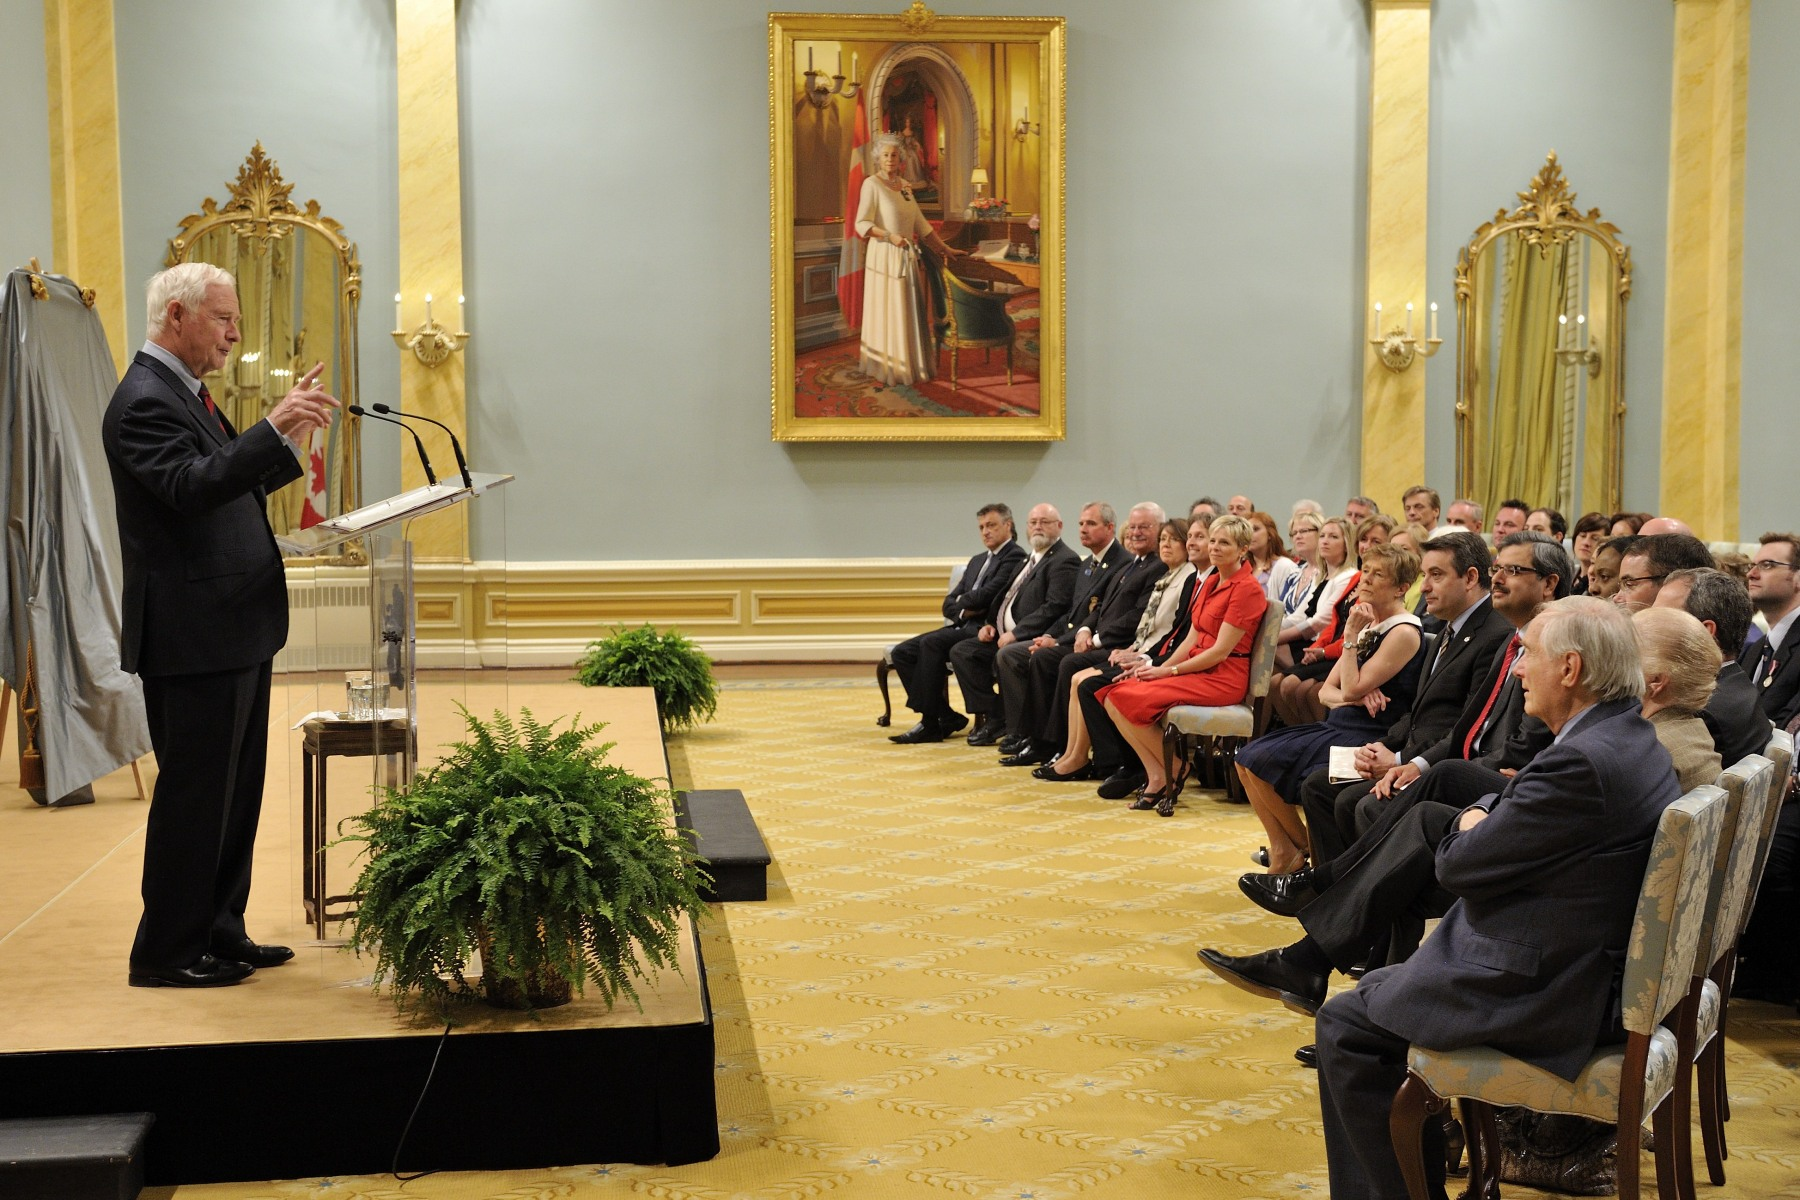 A postage stamp commemorating the 60th anniversary of Her Majesty Queen Elizabeth II's coronation was unveiled during a ceremony at Rideau Hall.